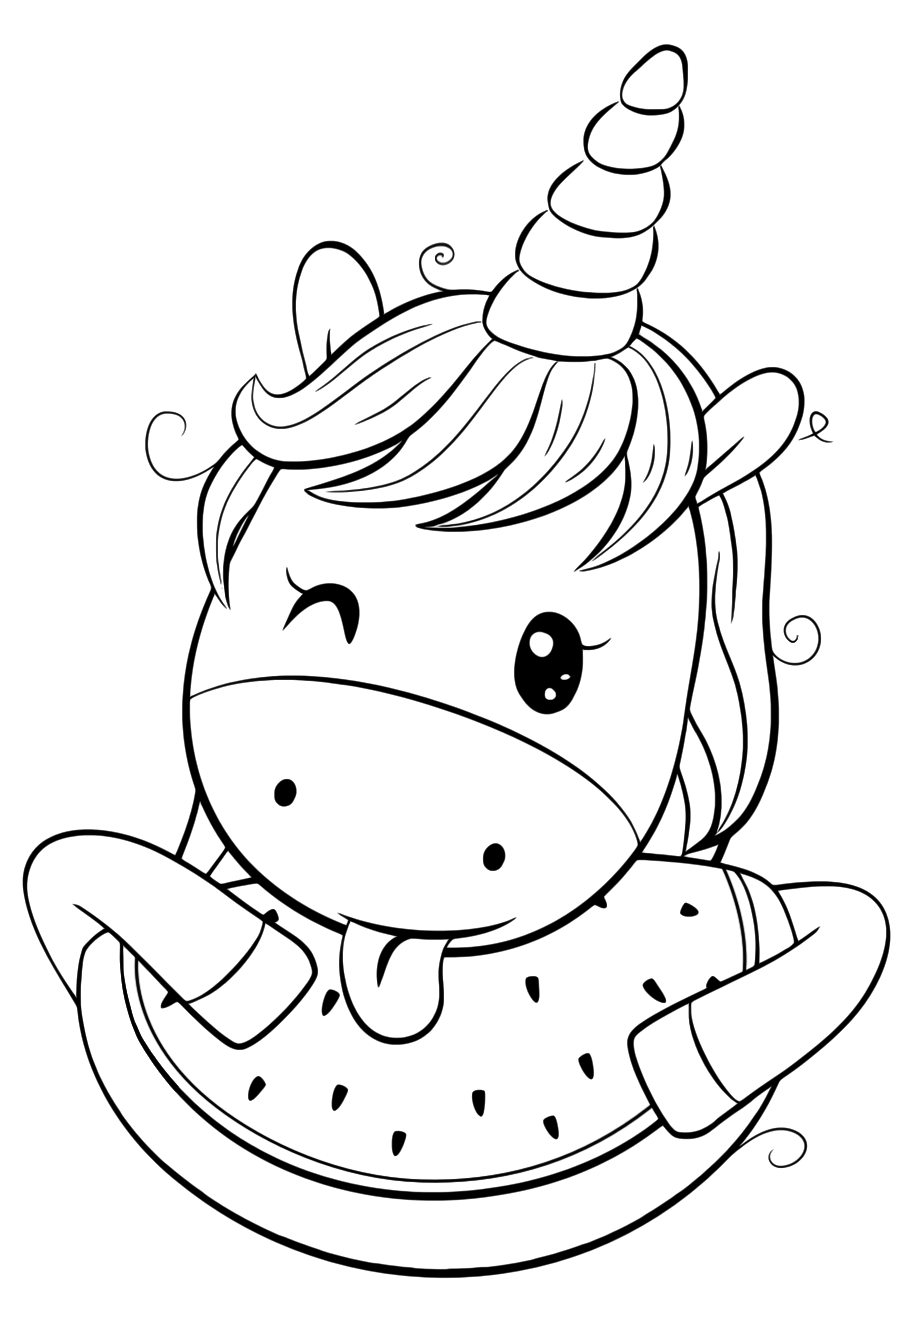 Cute Unicorn with watermelon - Coloring pages for you